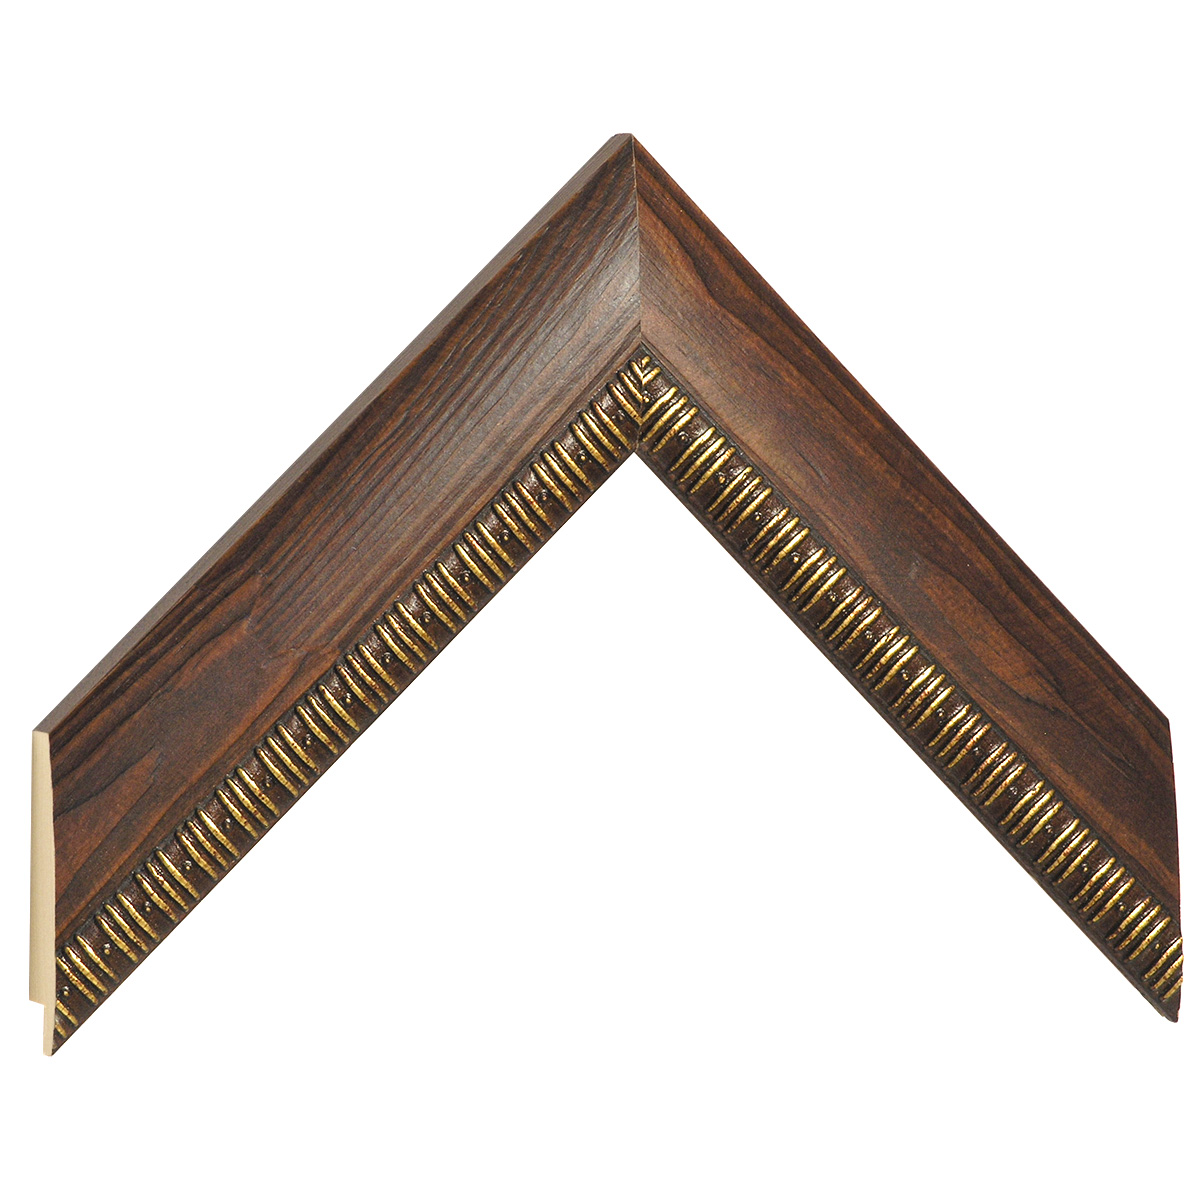 Moulding pine 40mm - walnut with gold decorations